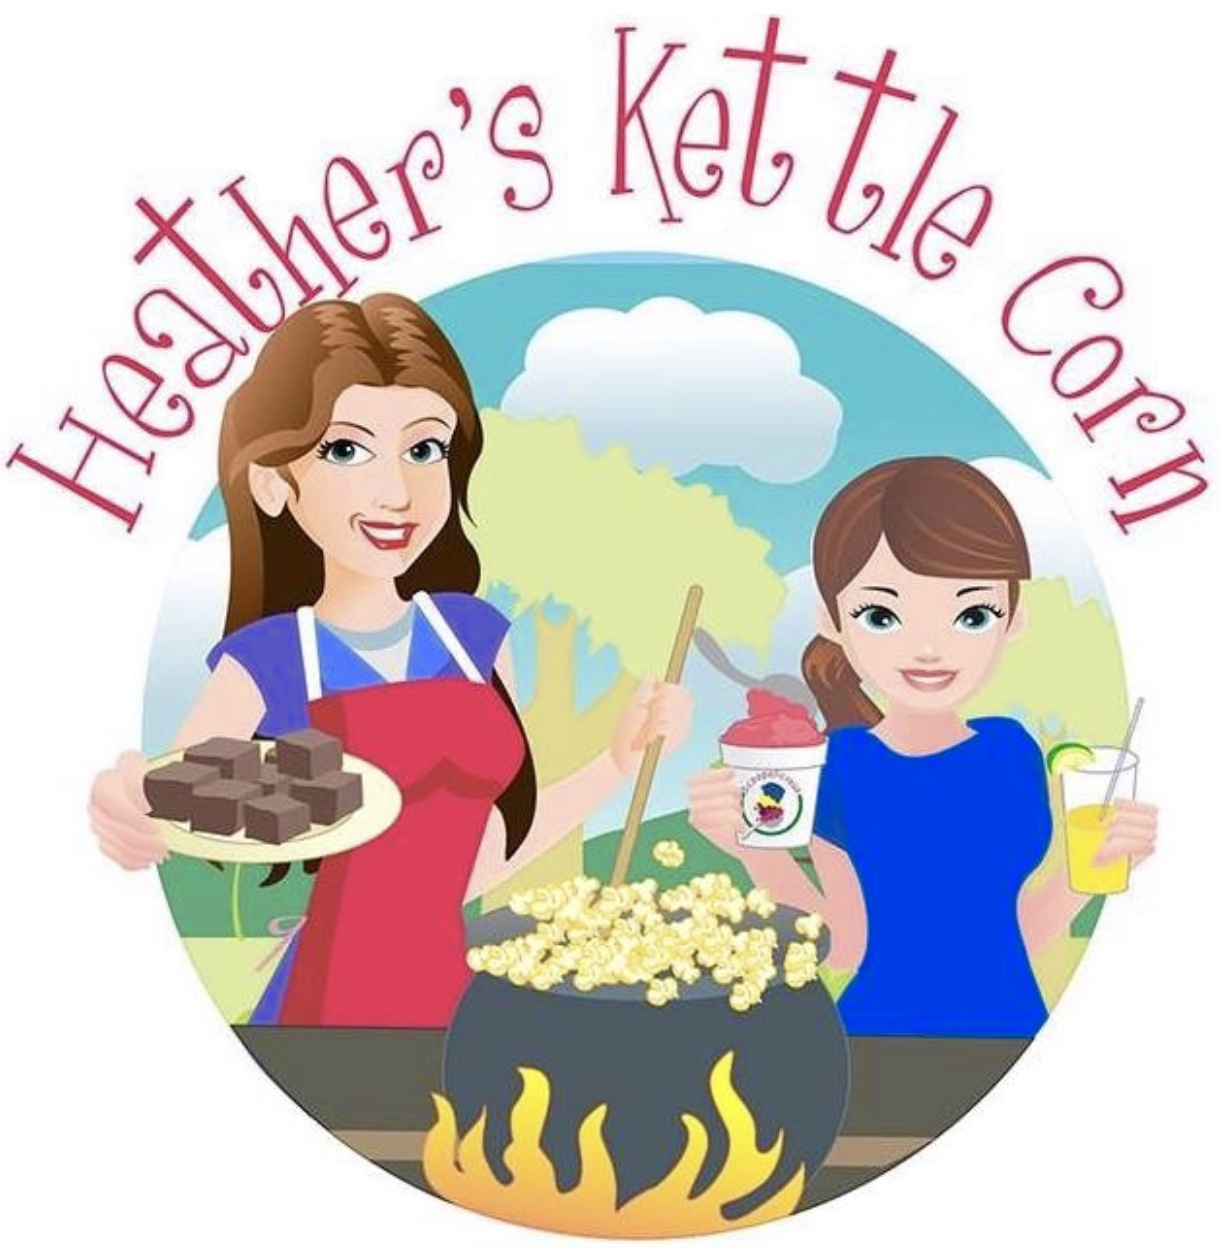 Heather's Kettle Corn